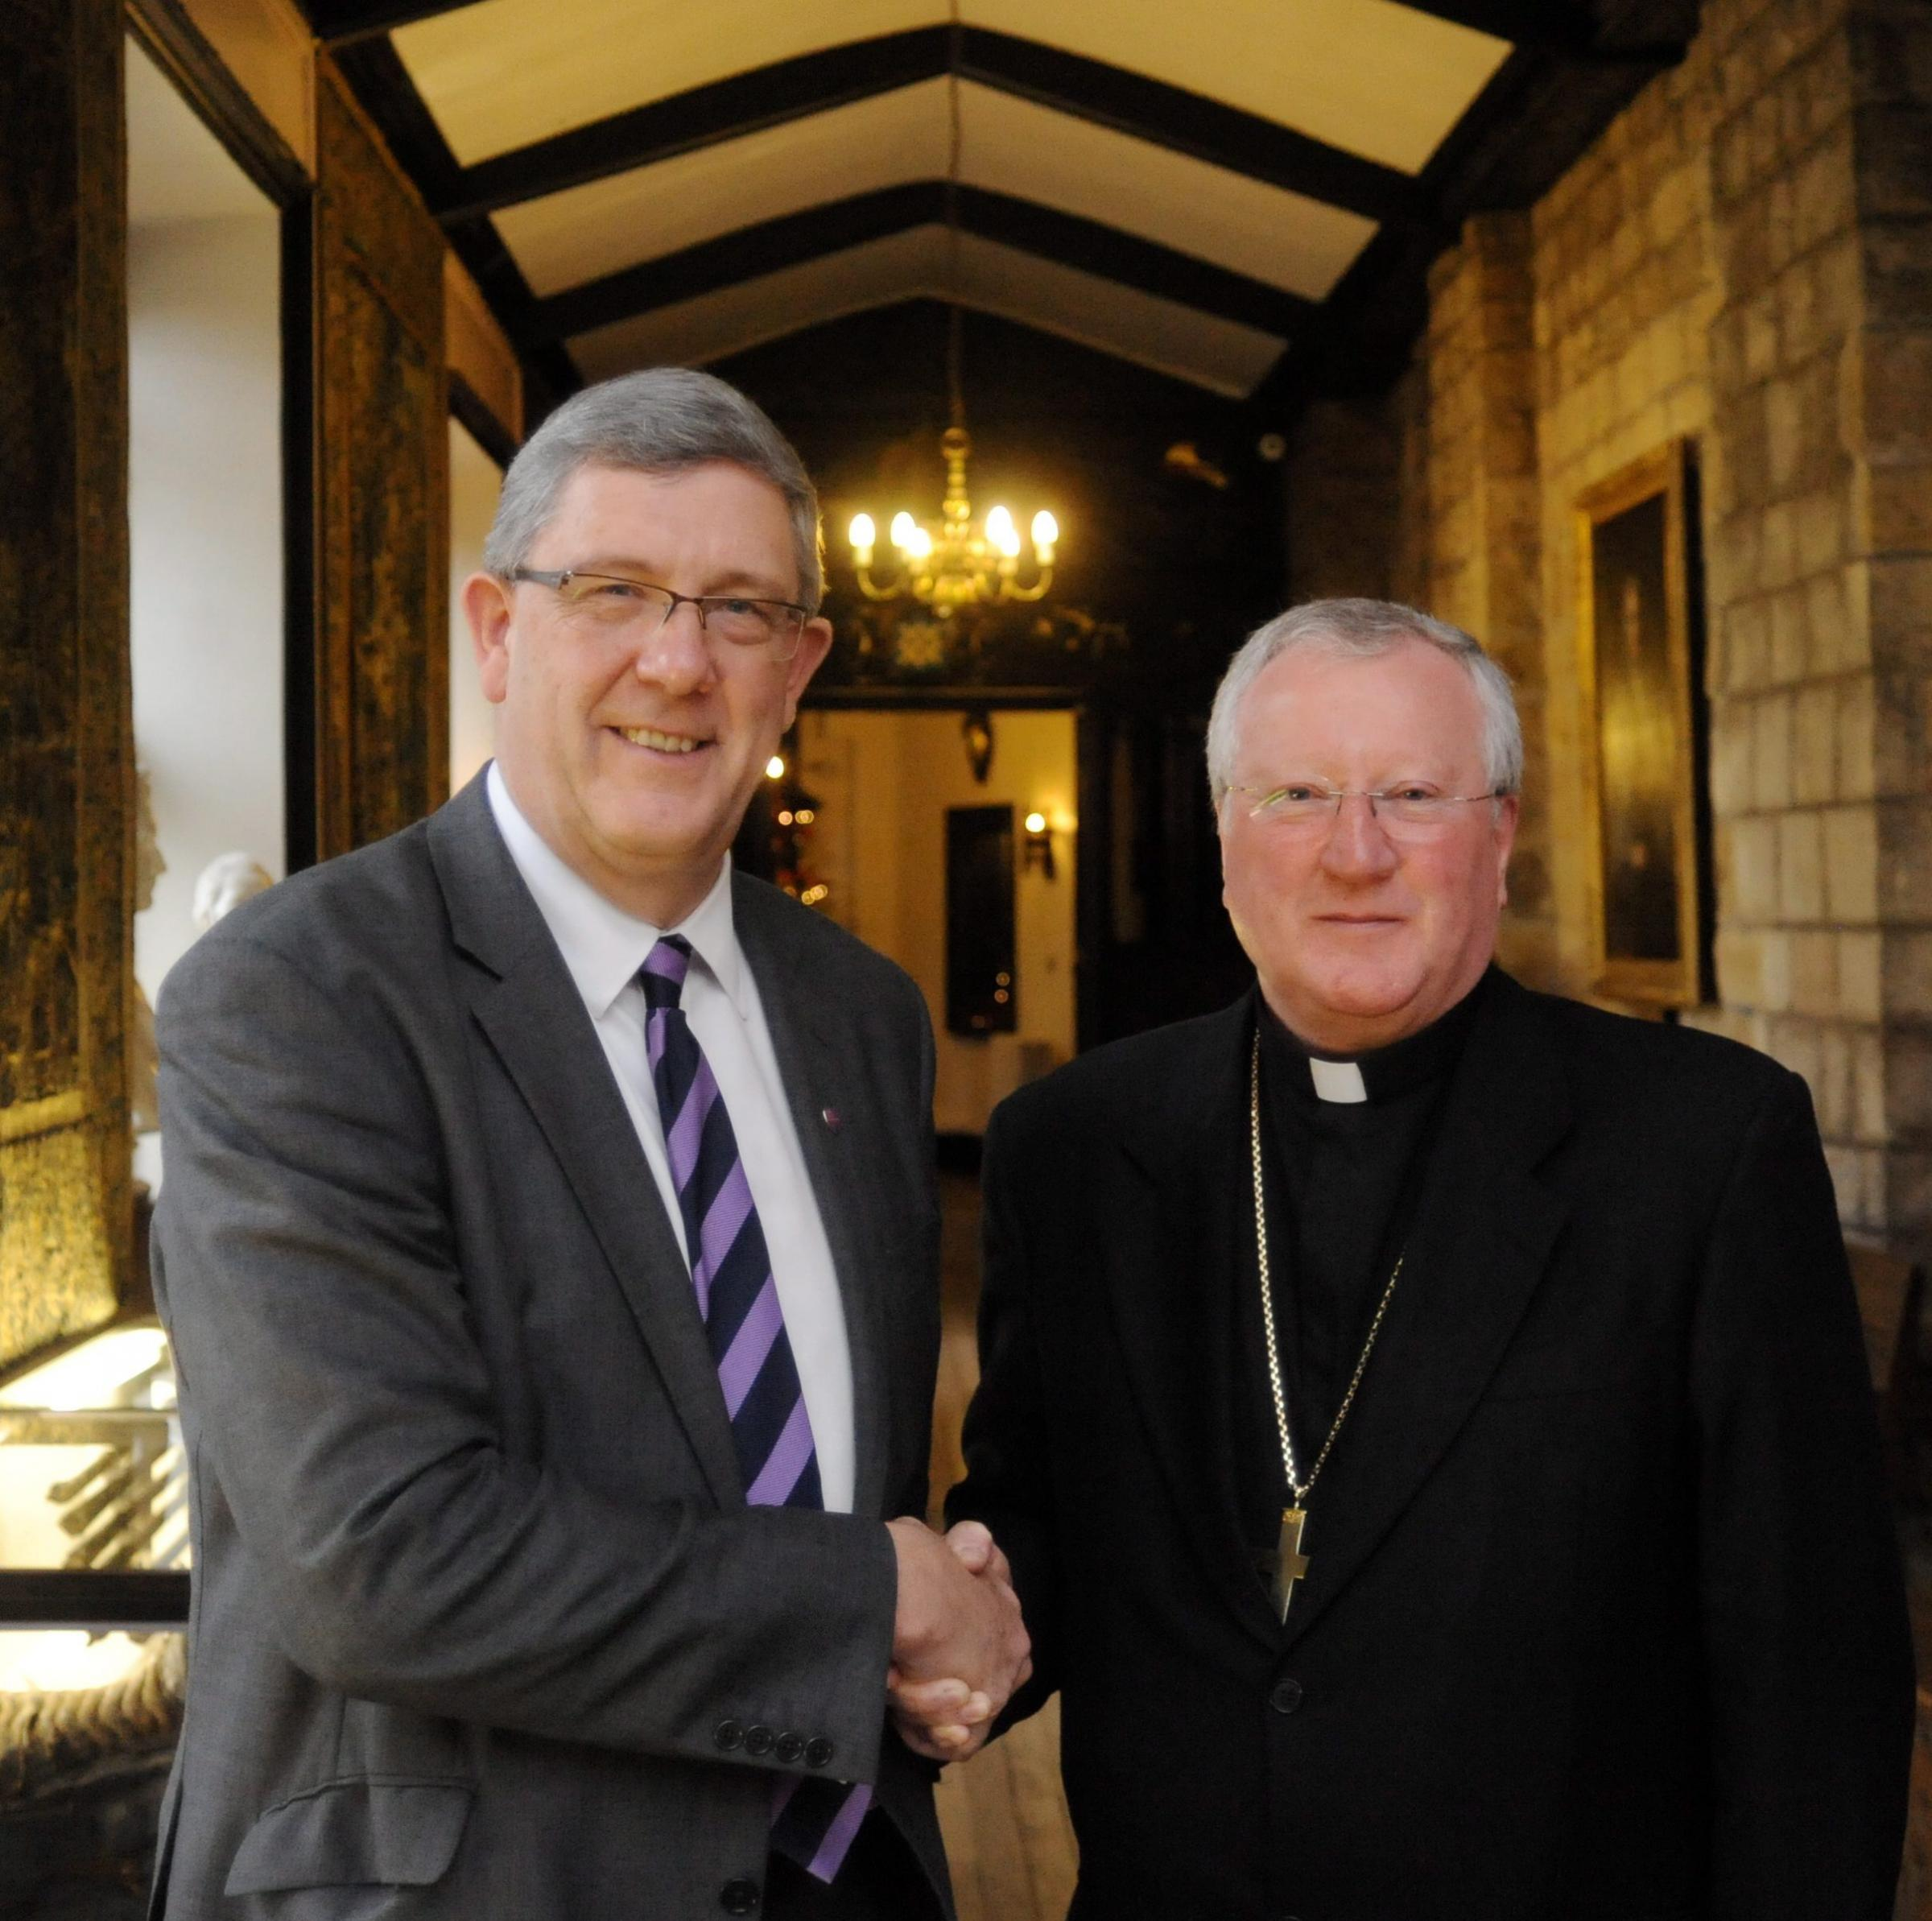 Professor Chris Higgins and Bishop Terence Drainey